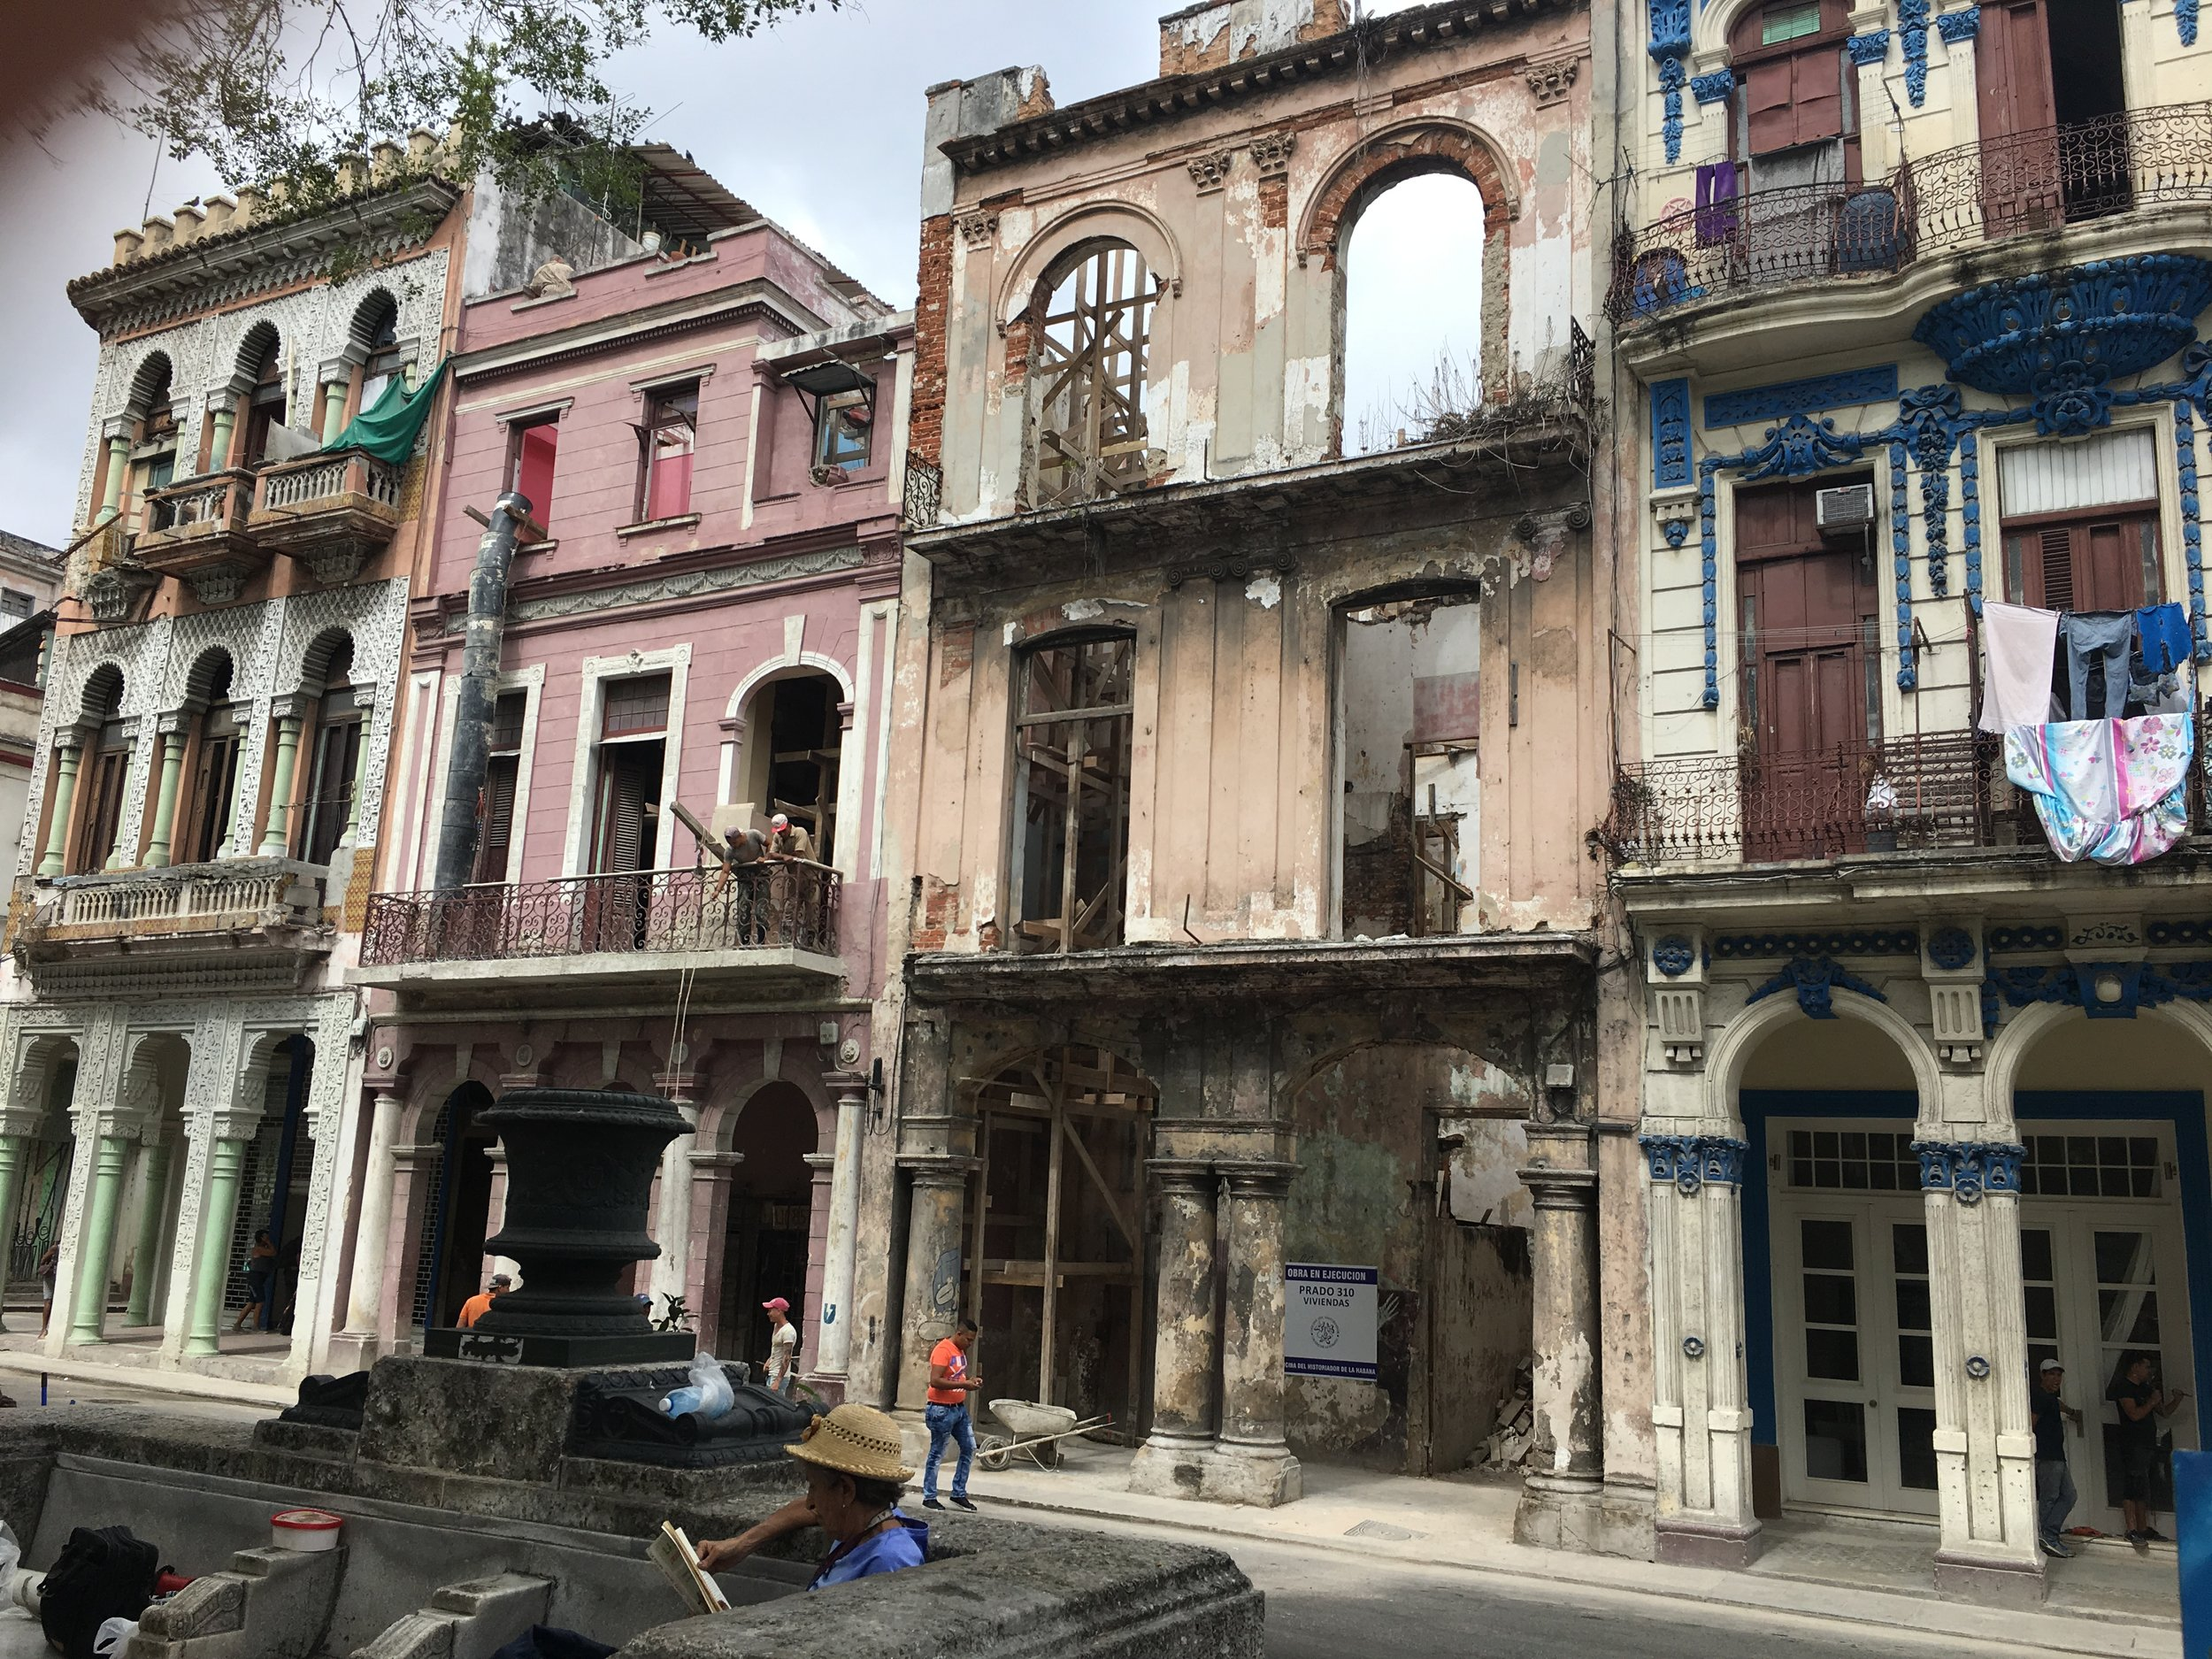 Not all the buildings on Paseo del Prado are in good condition